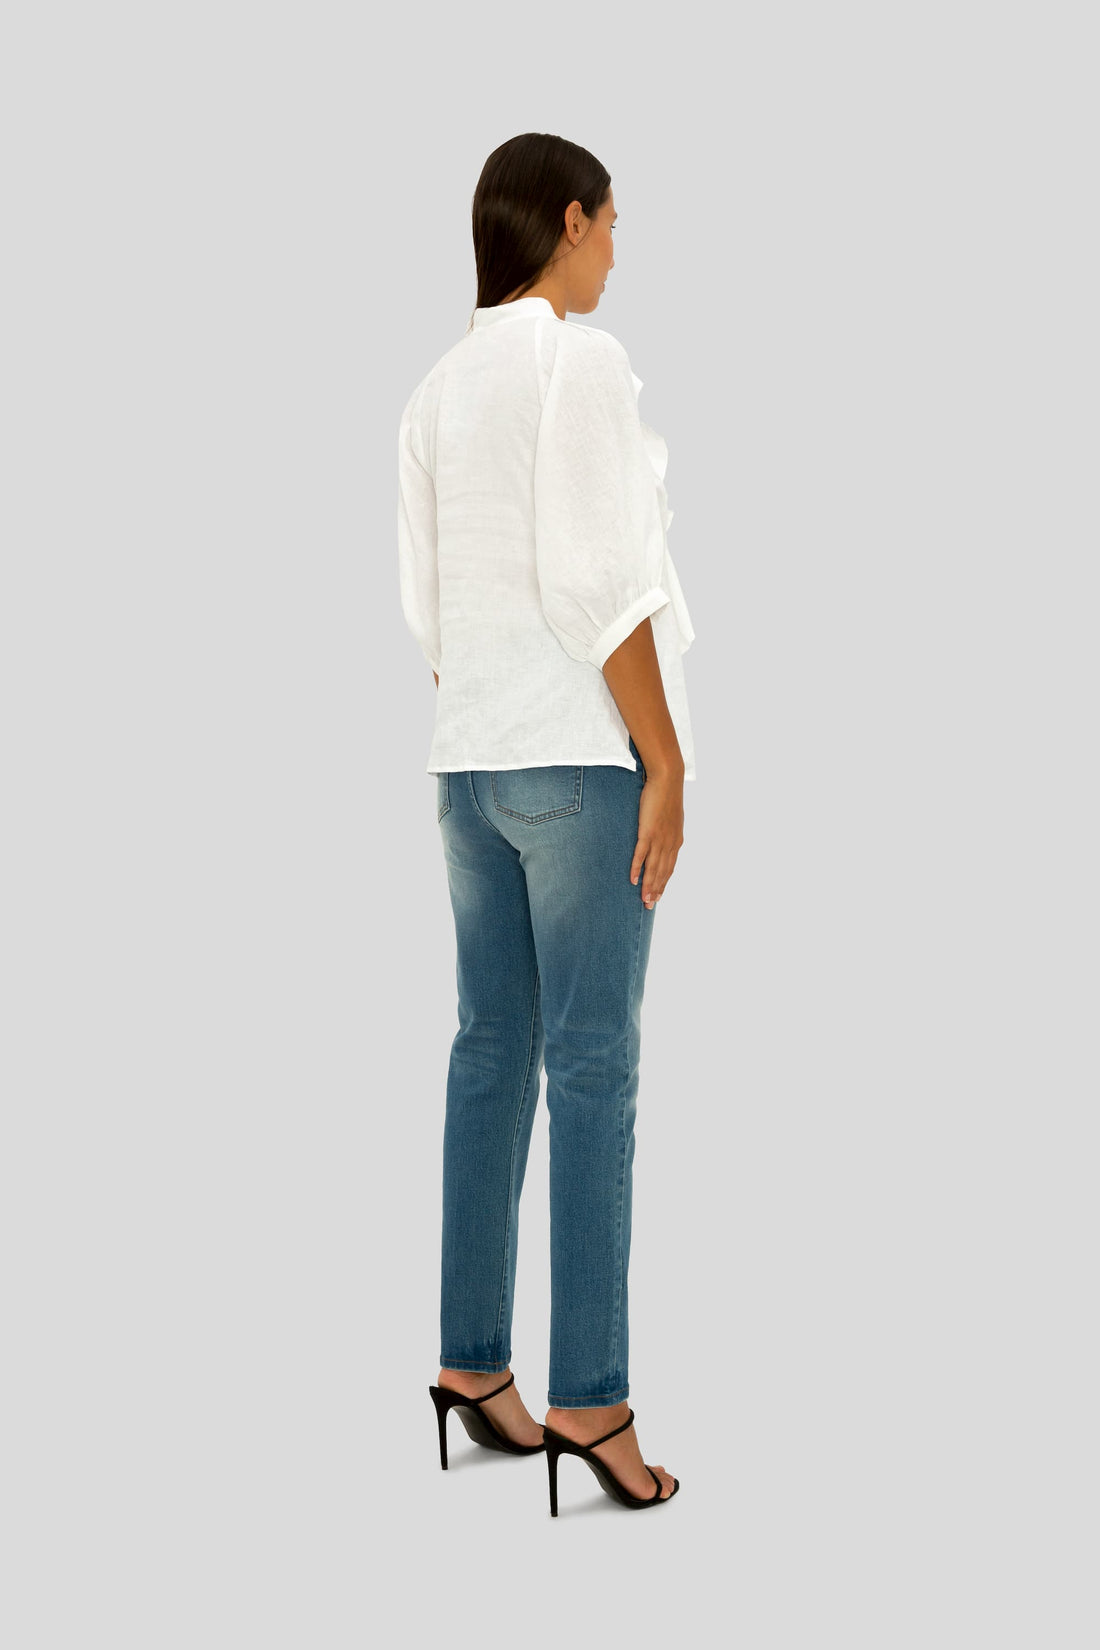 THE WHITE LINEN CRISP AND COOL FRILL SHIRT